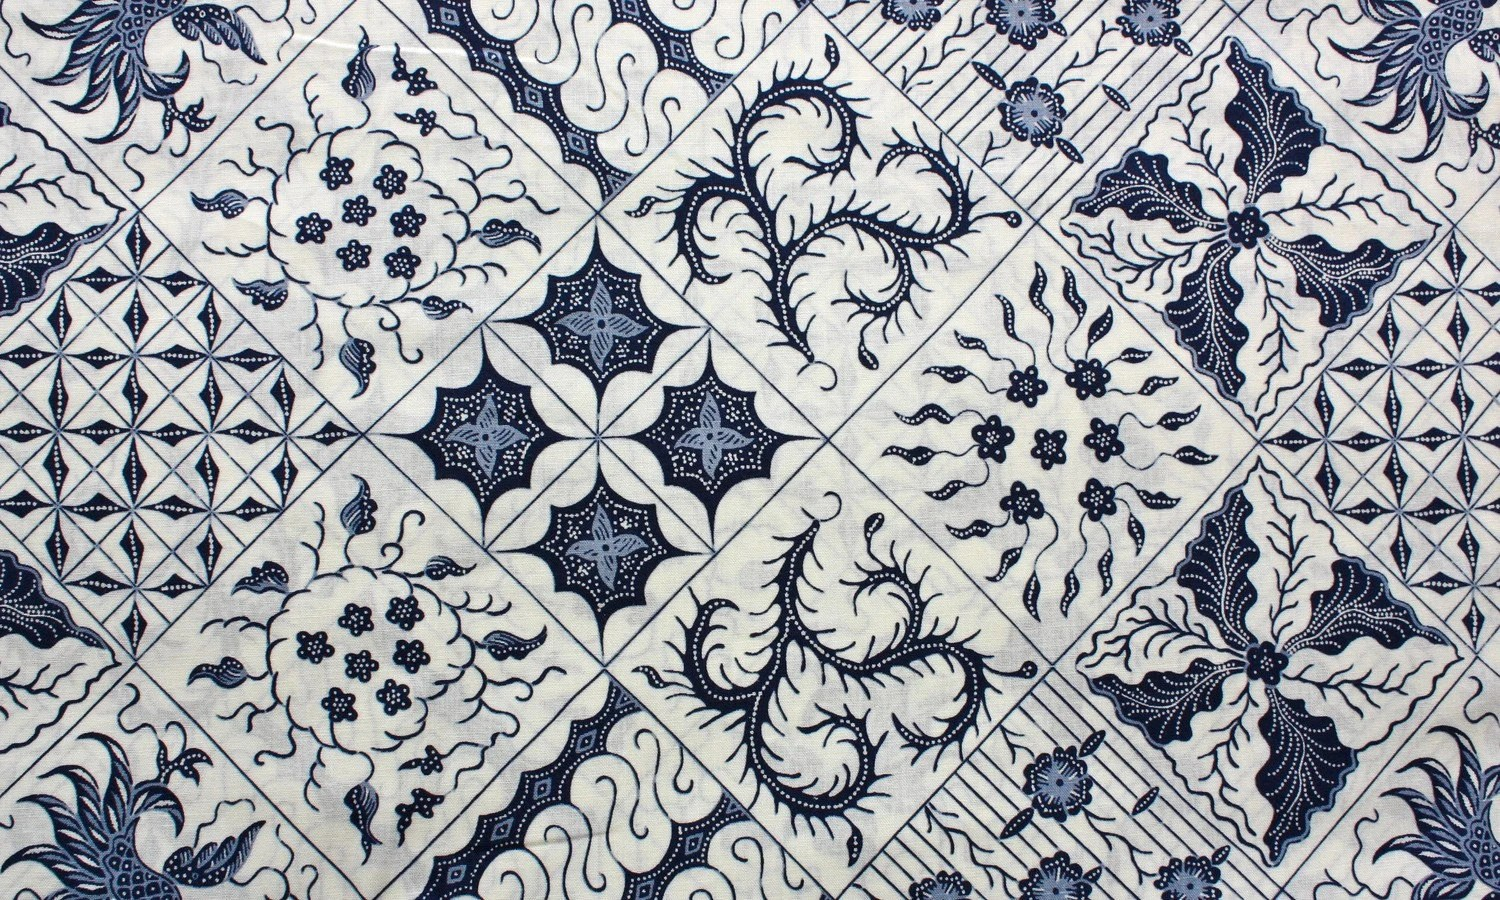 Printed Squares Batik Fabric - Buy More and Save